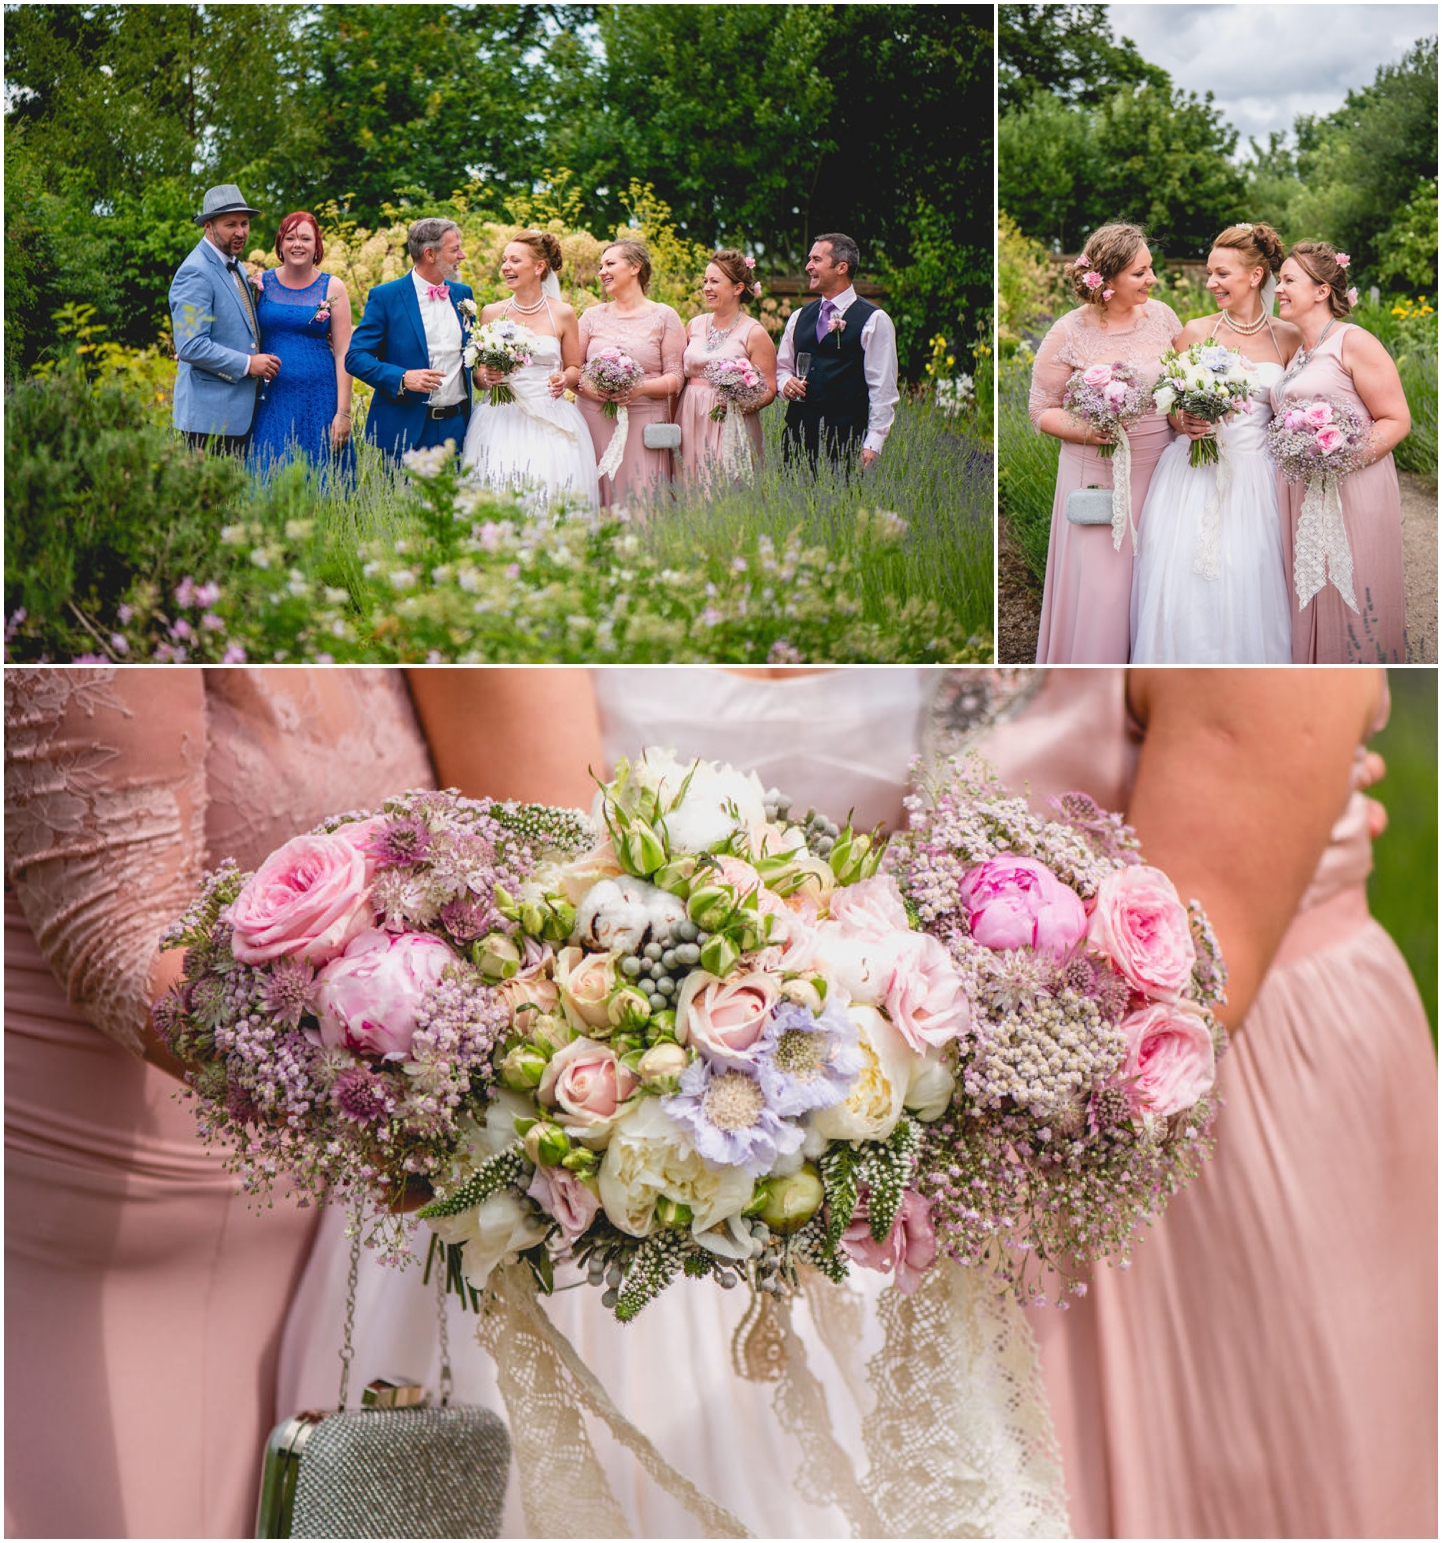 Daniella and Mark Wedding at Blakesley Hall in Birmingham, West Midlands by Lisa Carpenter Photography, Sutton Coldfield based wedding photographer, pink bridesmaids